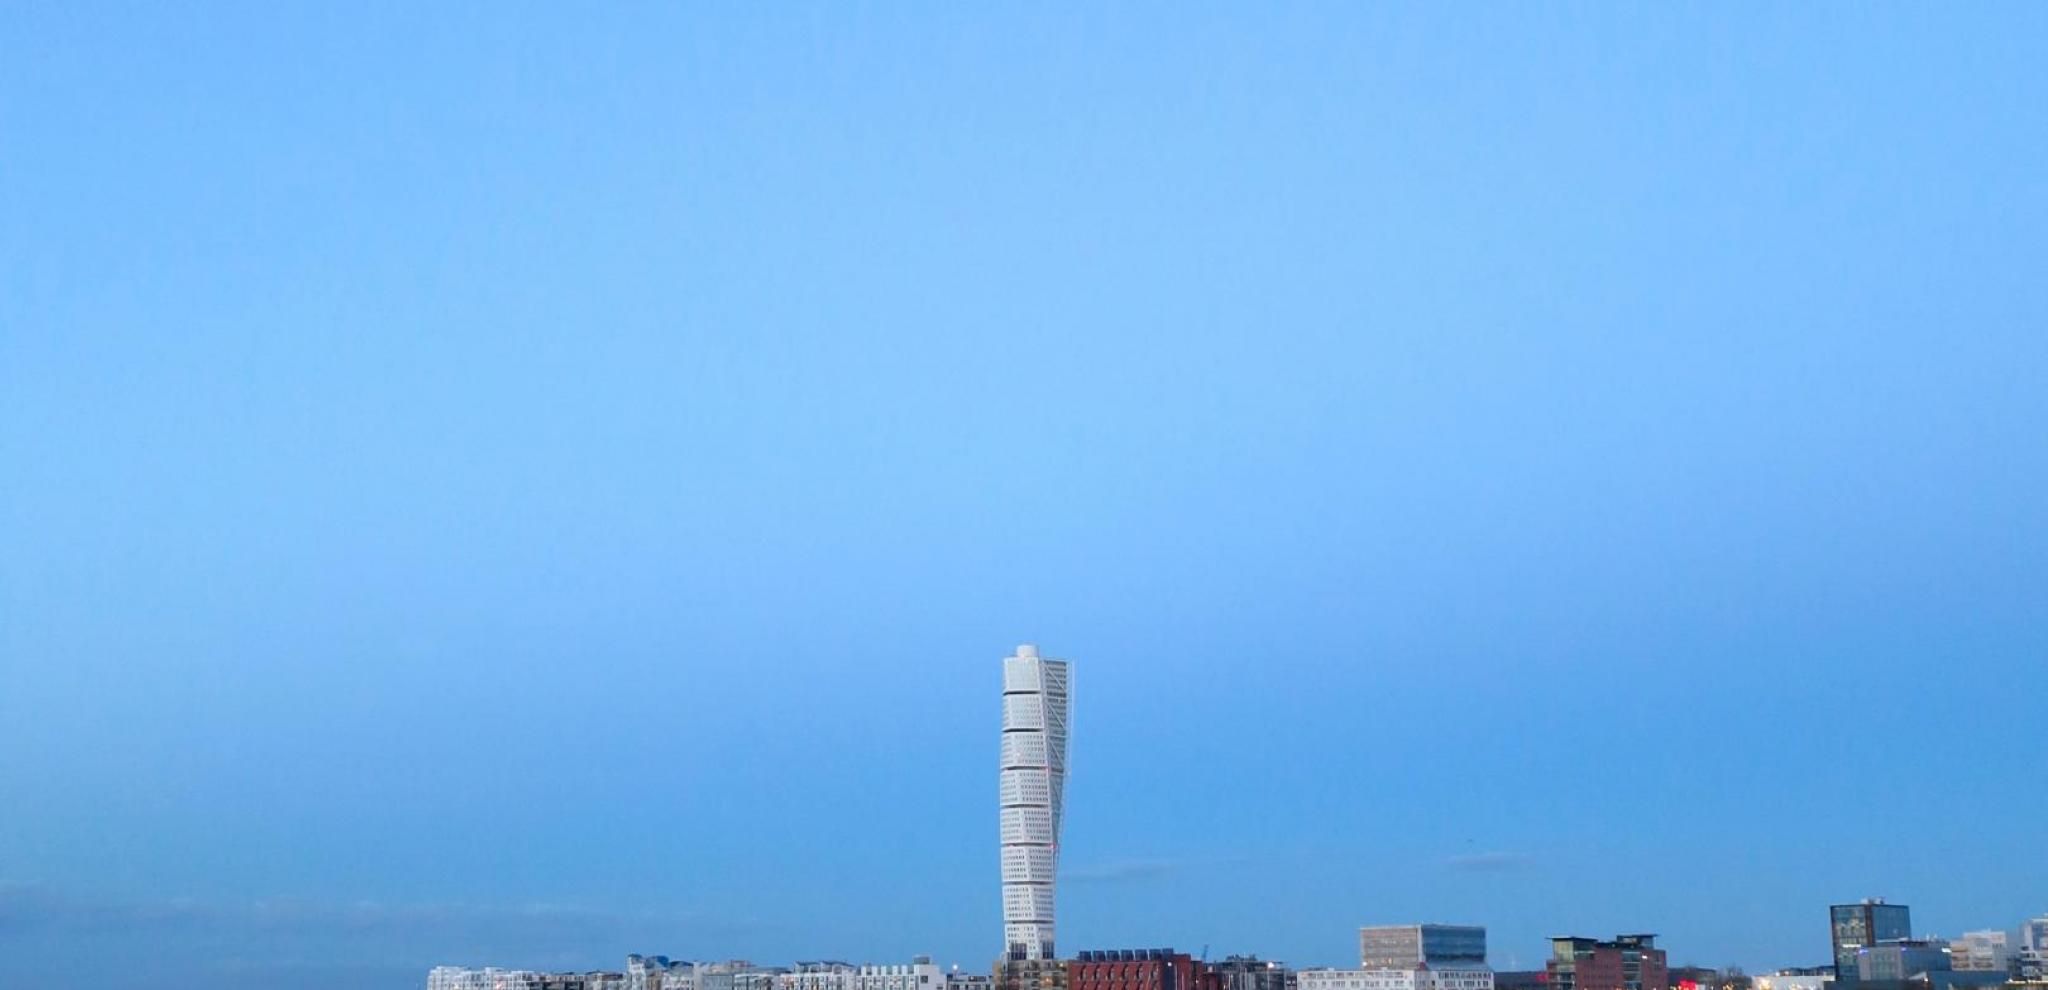 Turning Torso and Västra hamnen